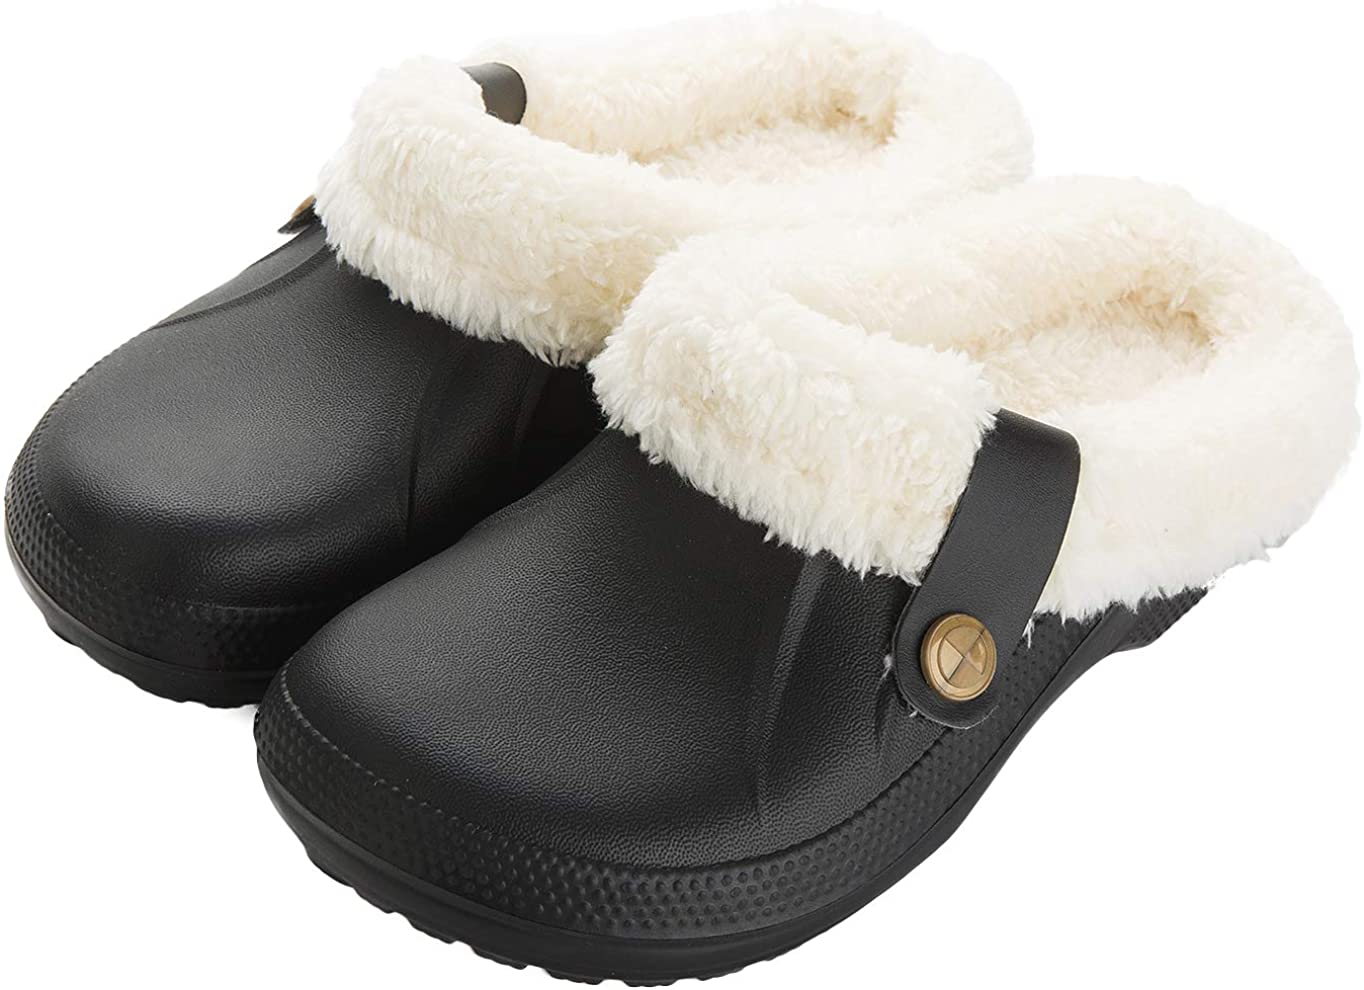 | ChayChax Waterproof Slippers Women Men Fur Lined Clogs Winter Garden Shoes Warm House Slippers Indoor Outdoor Mules | Mules & Clogs